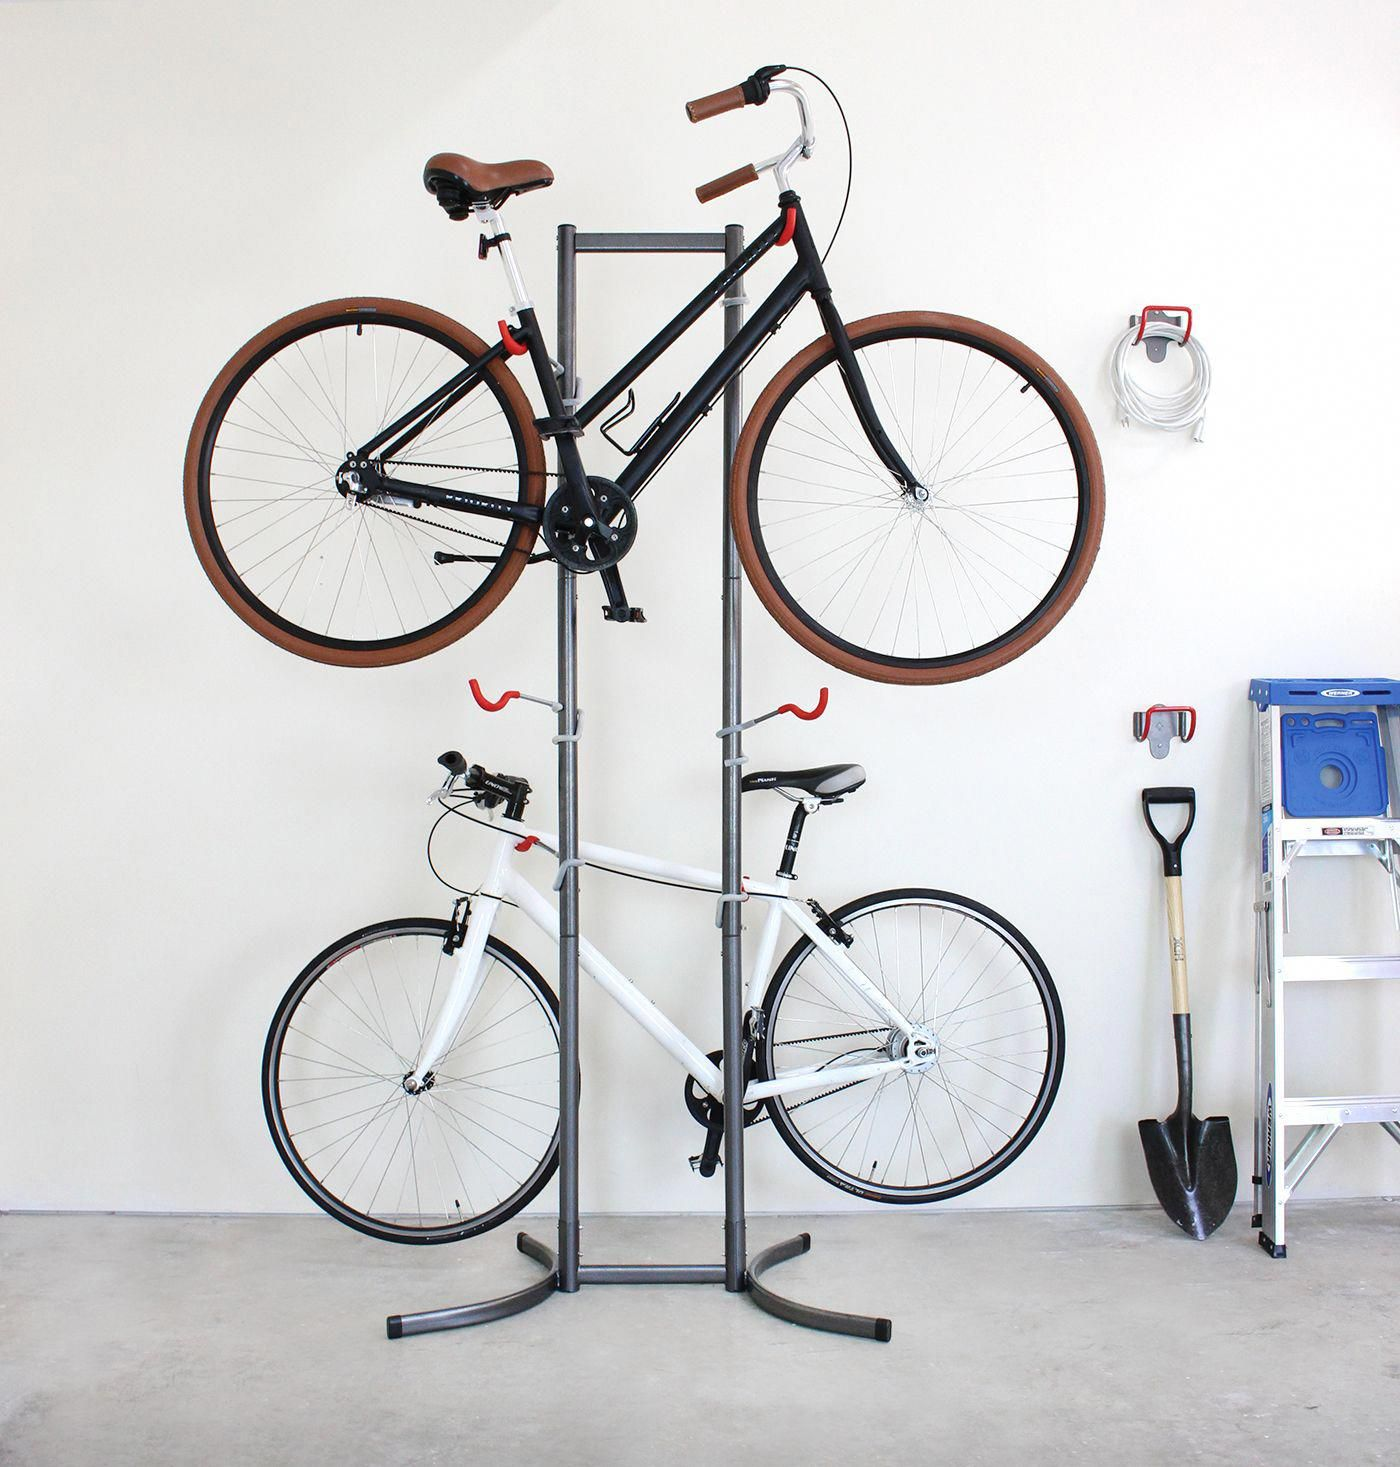 Park your ride on a chic bike stand